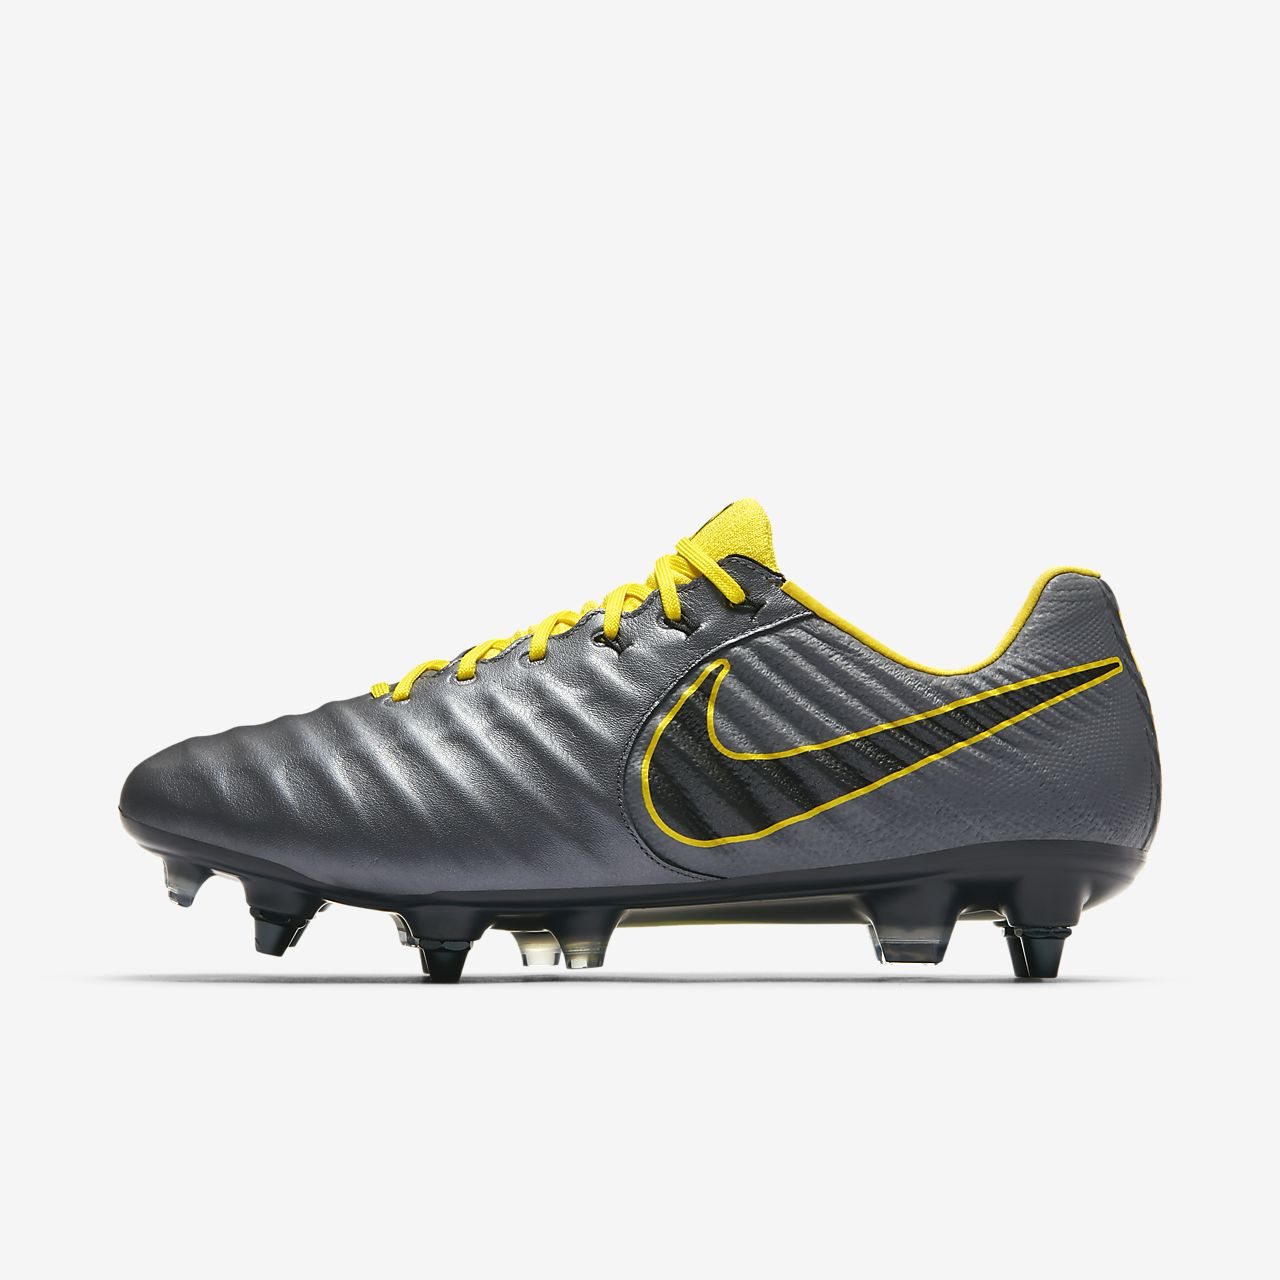 Nike Tiempo Legend VII Elite SG-Pro Anti-Clog Soft-Ground Football Boot